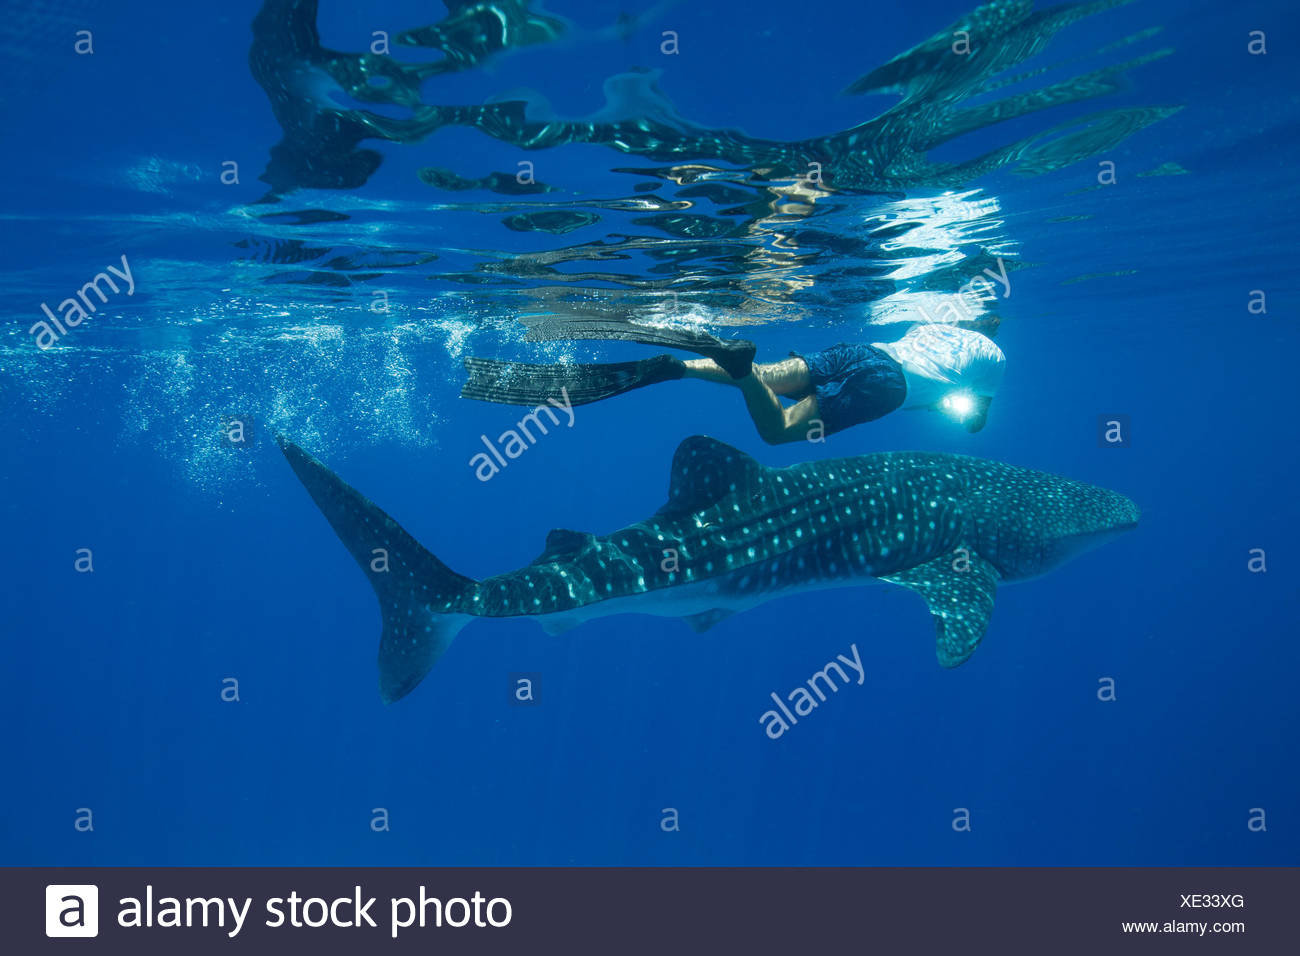 A researcher takes a photo identification of a whale shark. - Stock Image